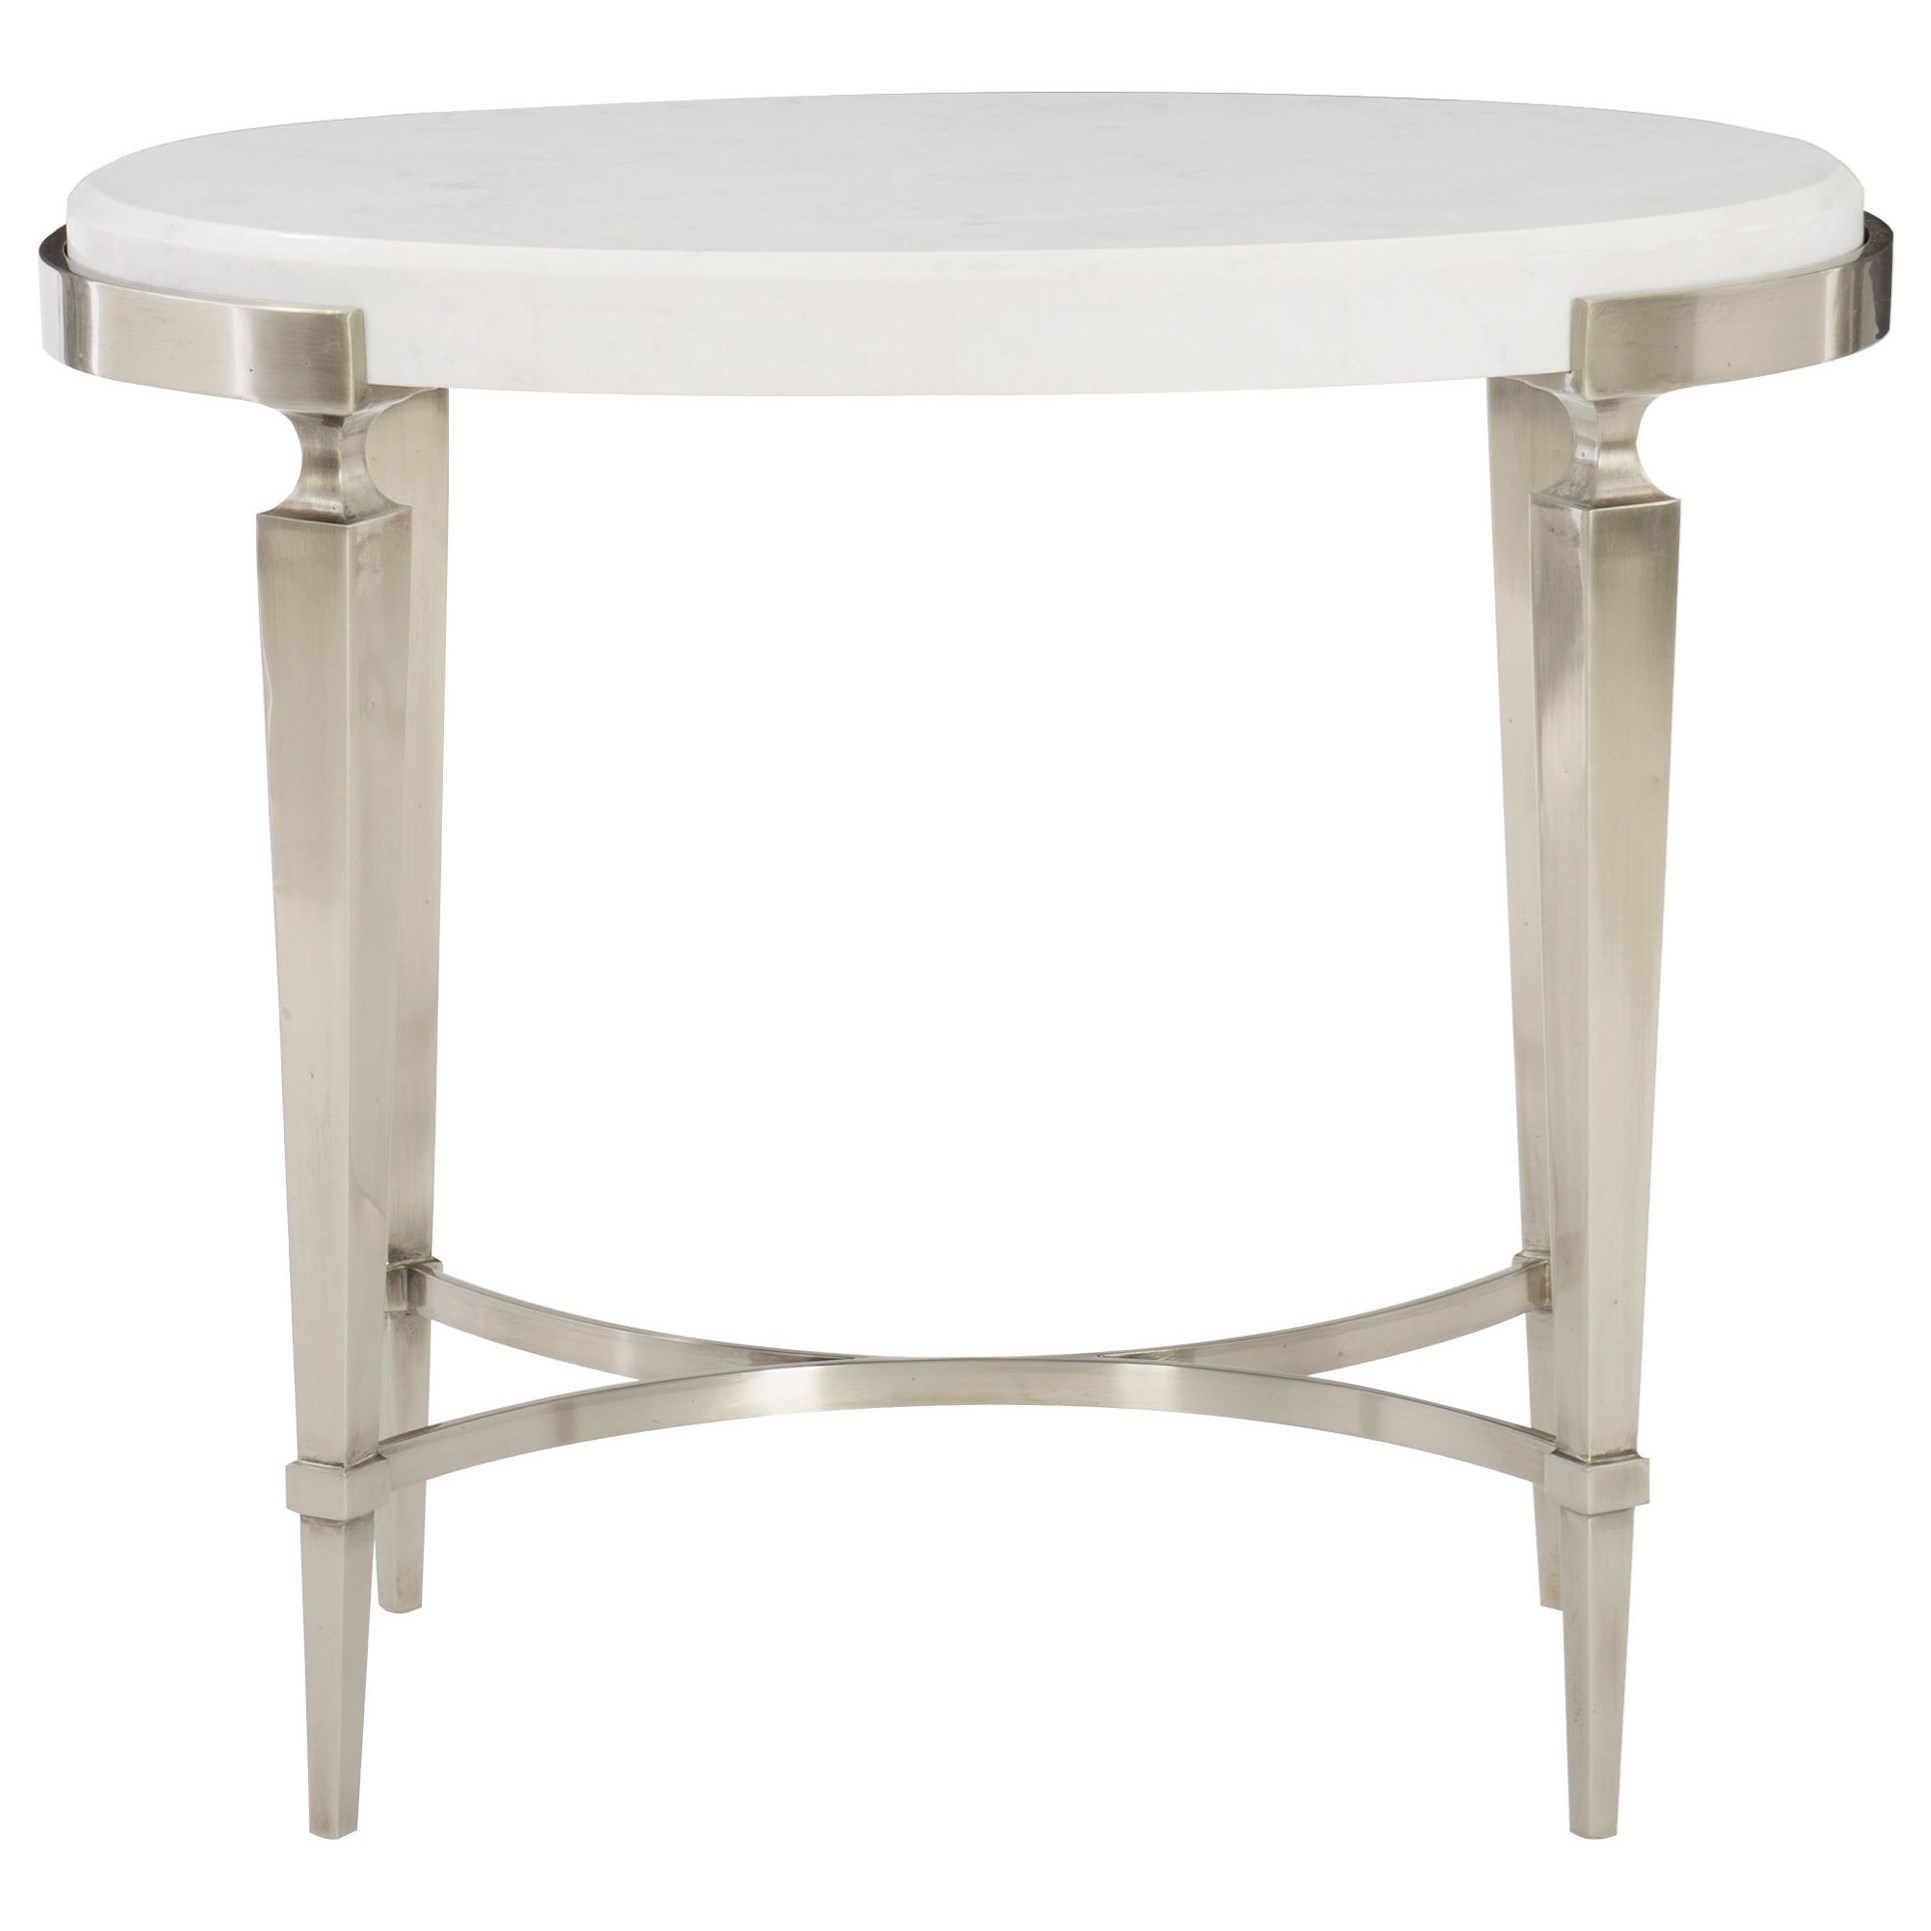 Table Metal Blanc Bernhardt Domaine Blanc Transitional Side Table With Laminated